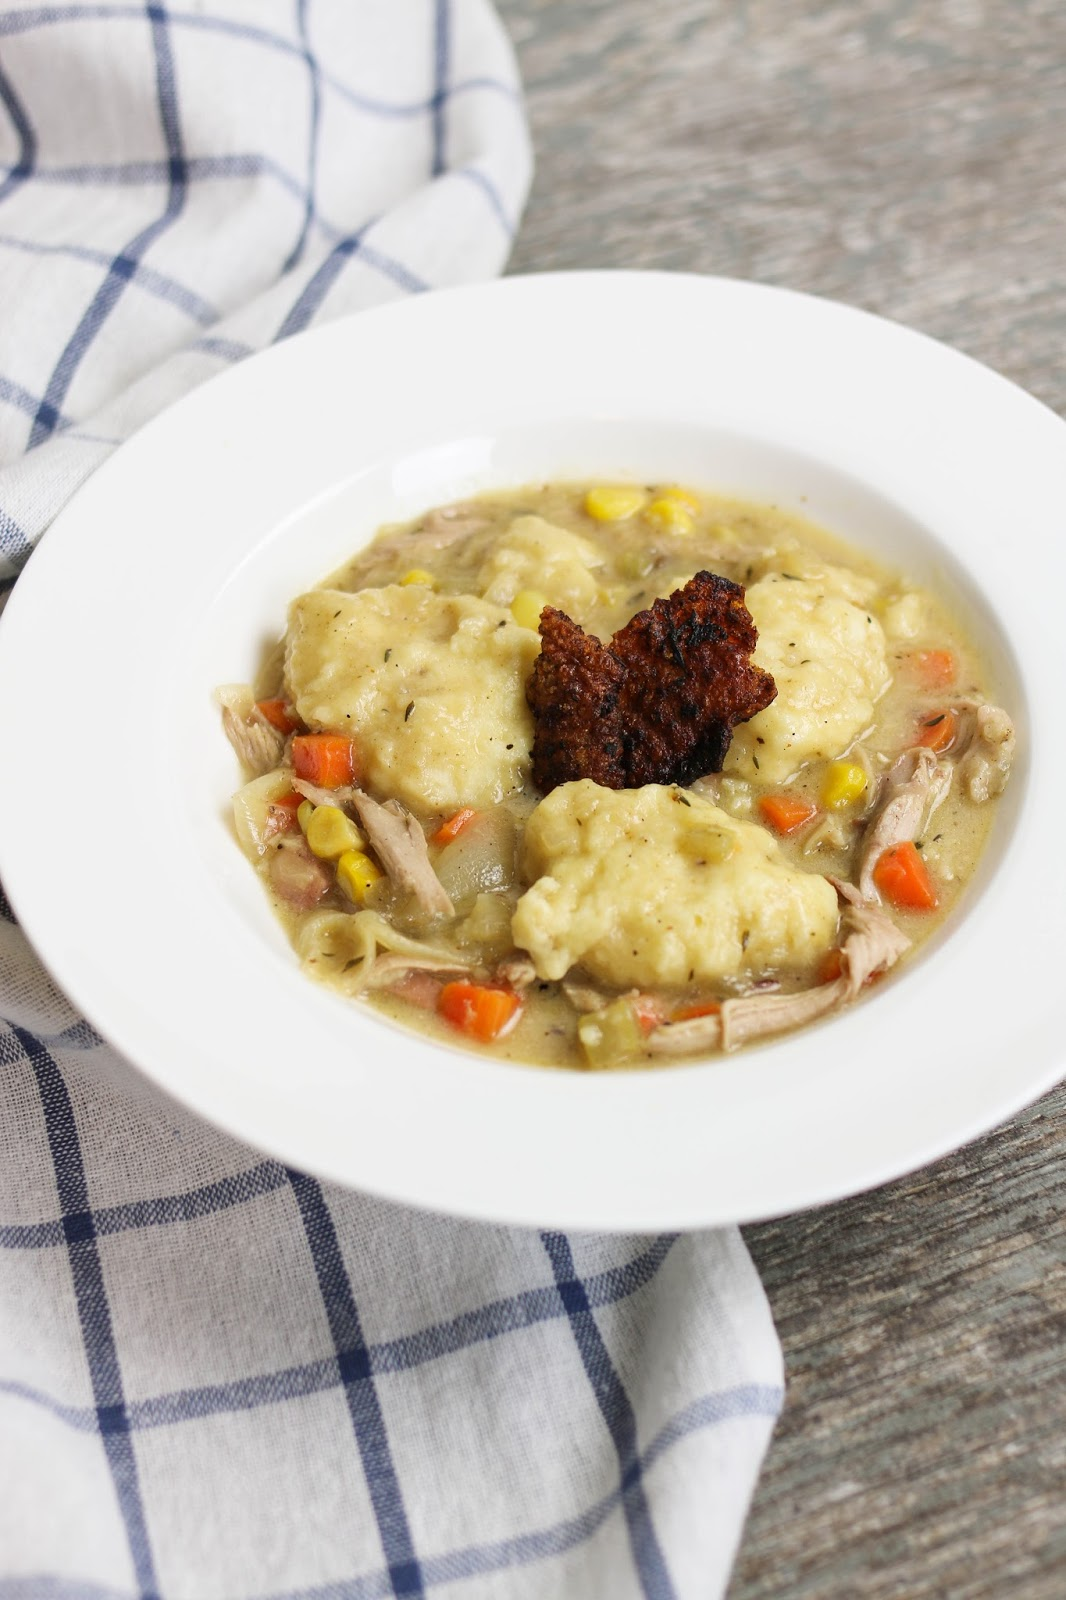 Turkey & Dumplings Recipe